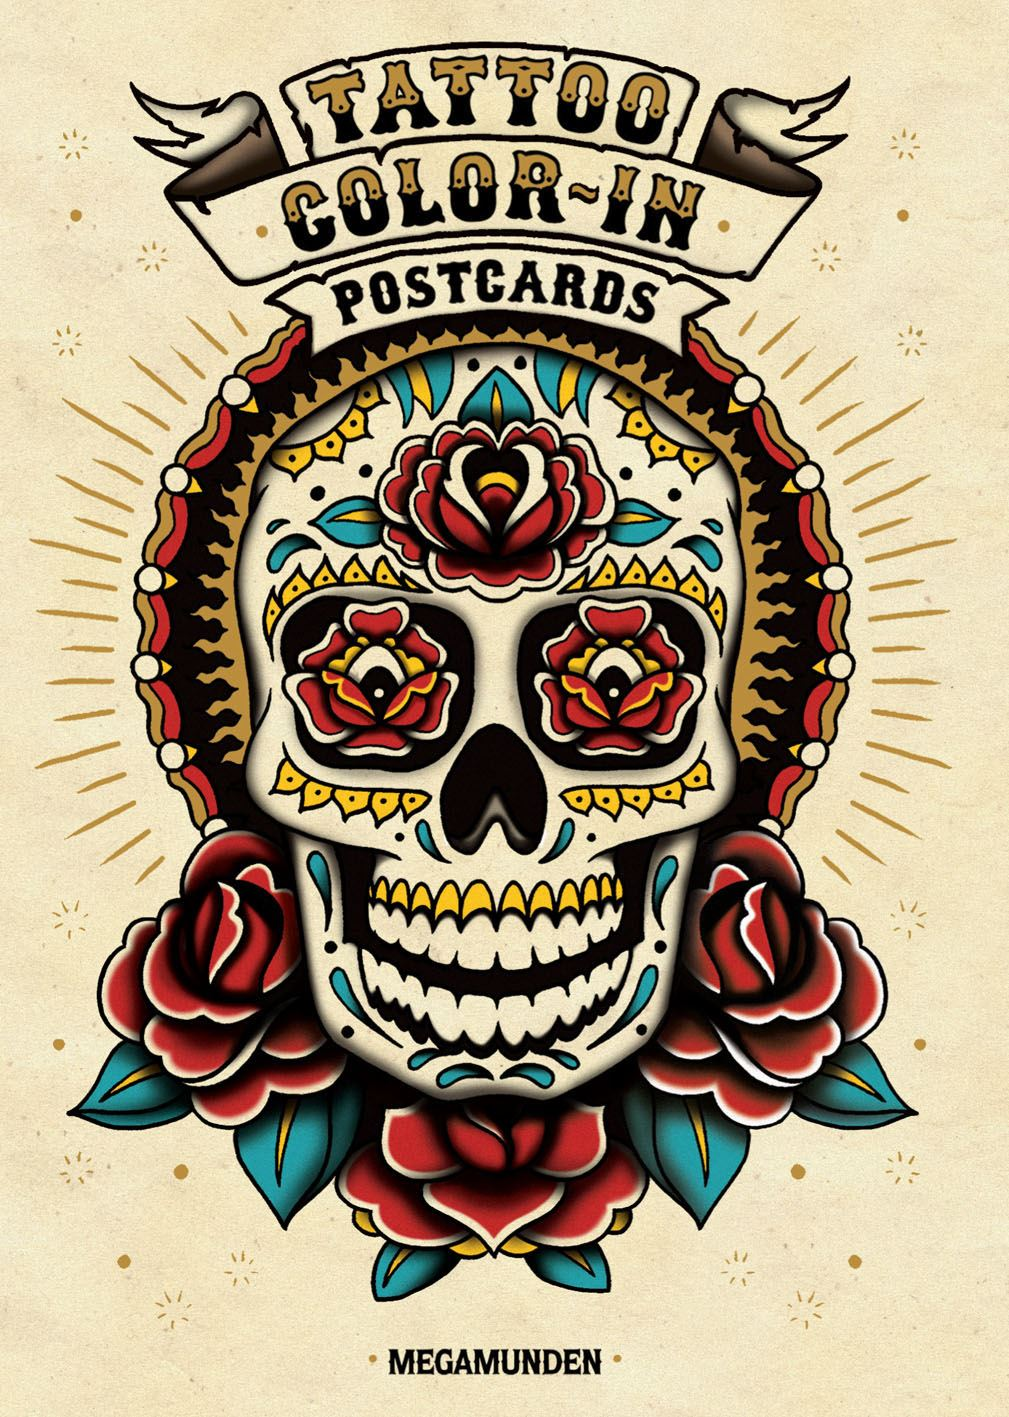 Tattoo Colour in Postcards